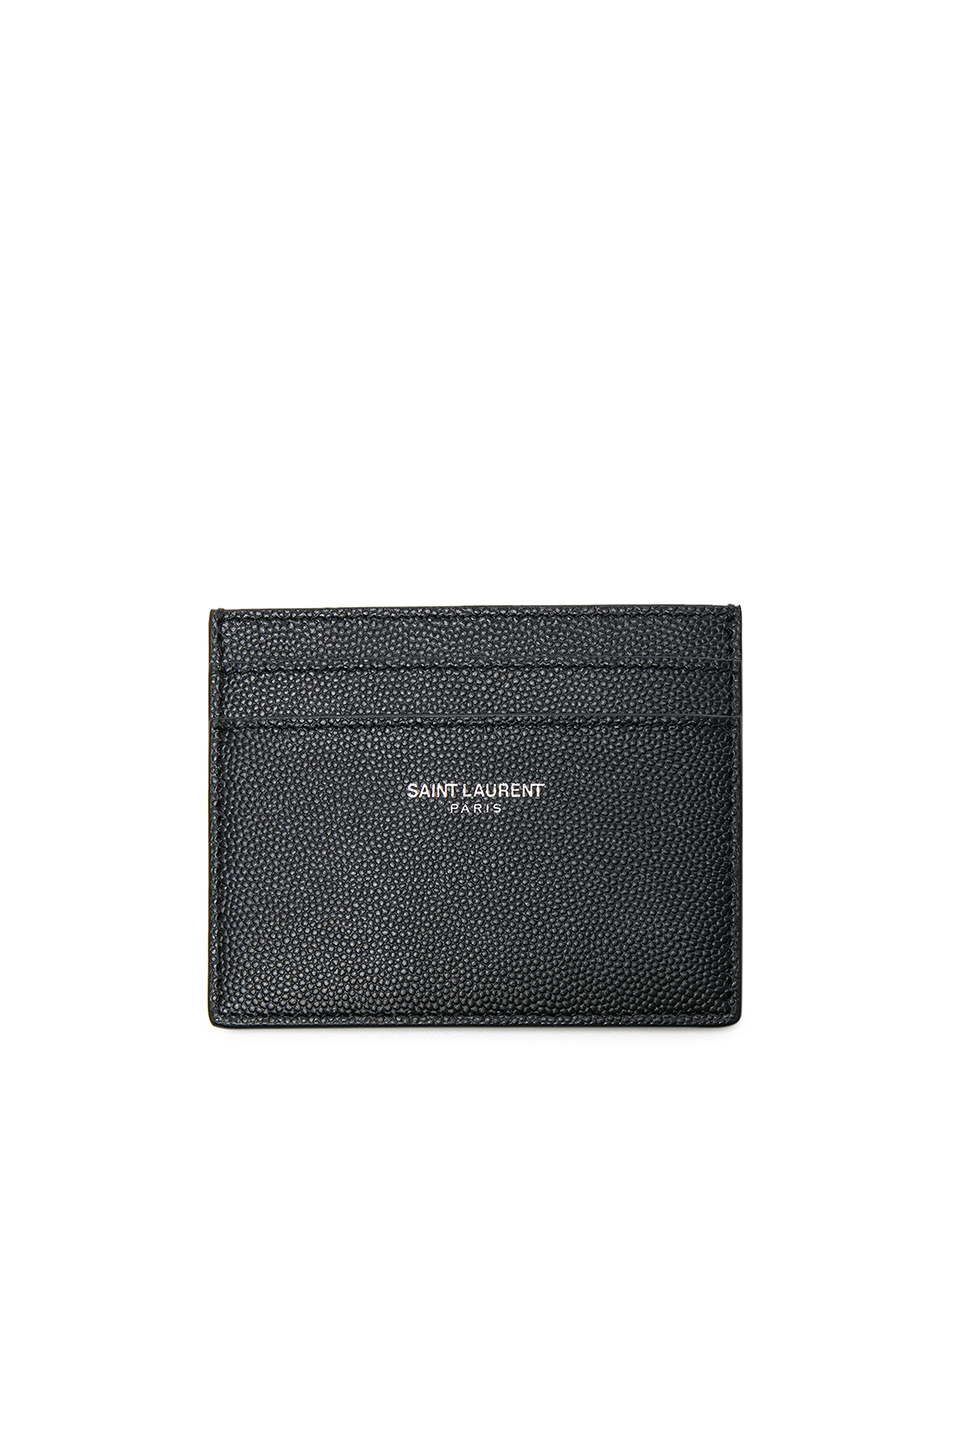 Saint Laurent Cardholder in Black